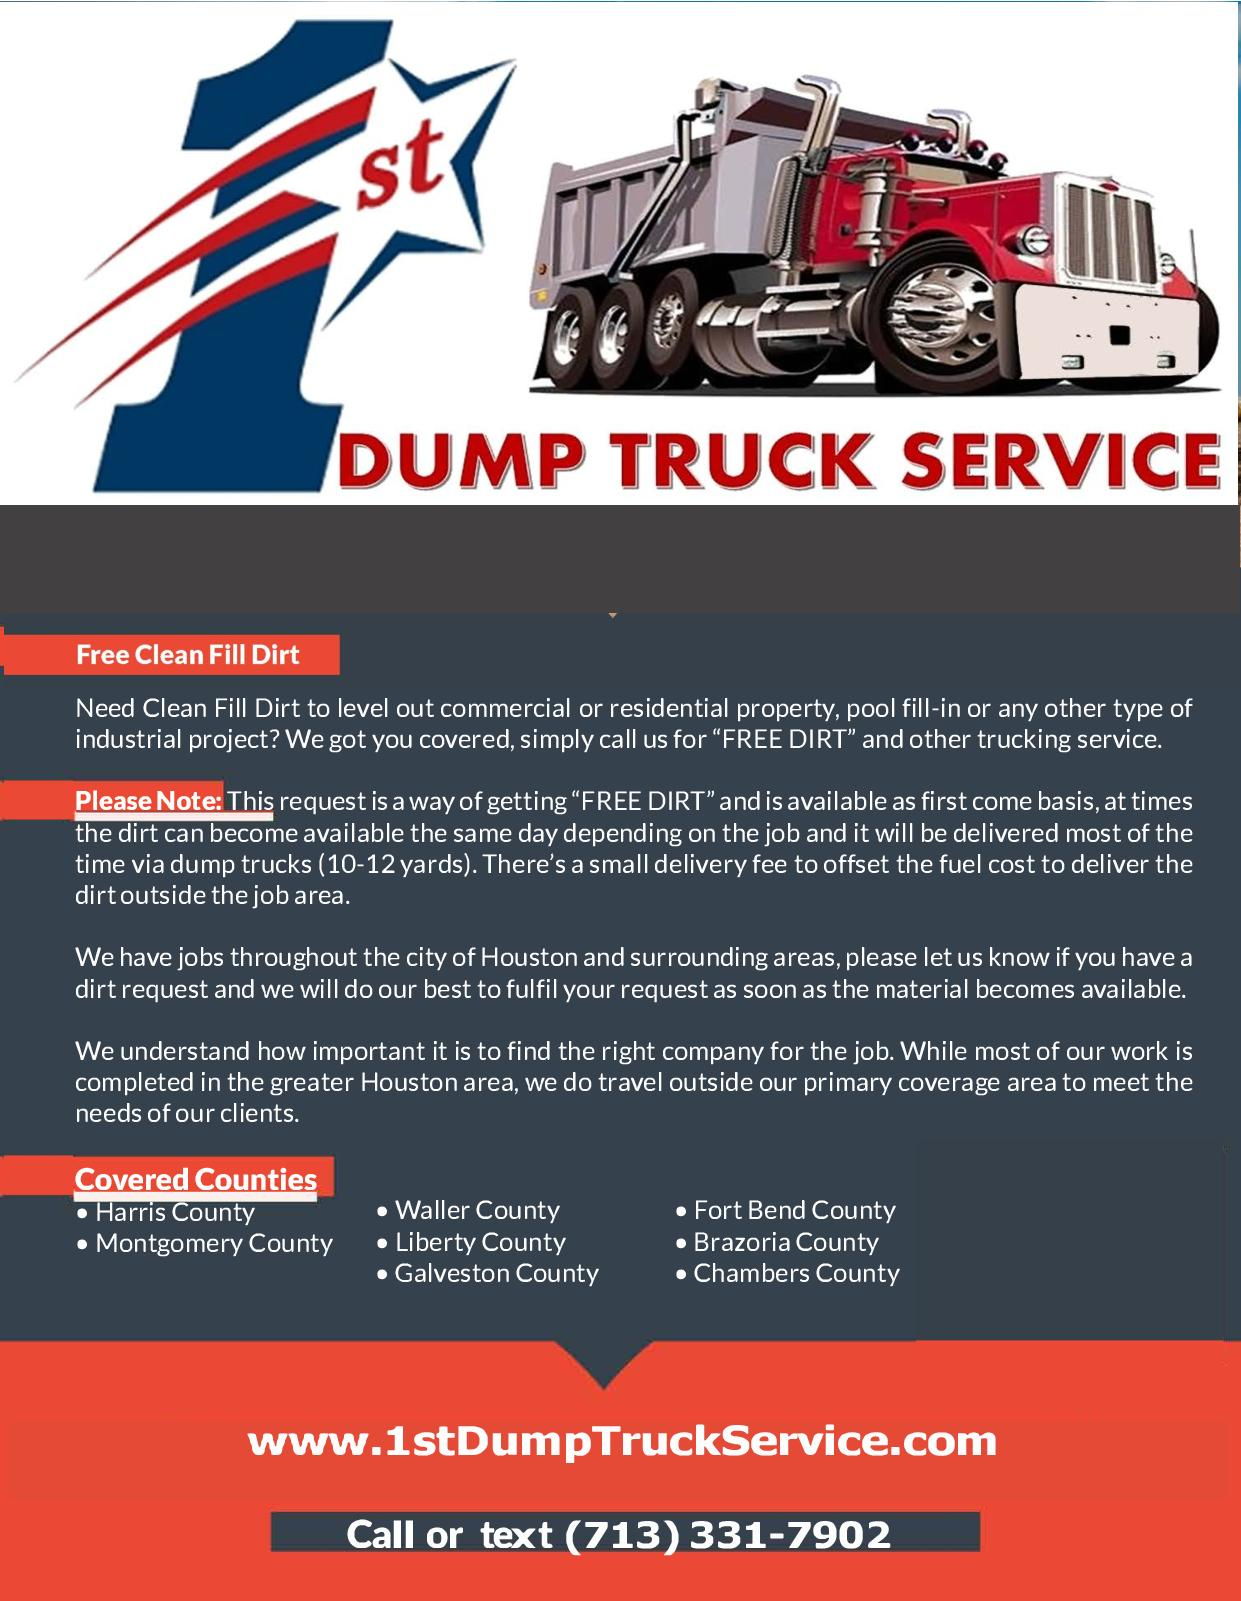 Calaméo - 1st Dump Truck Service Back Fill Dirt Trucking